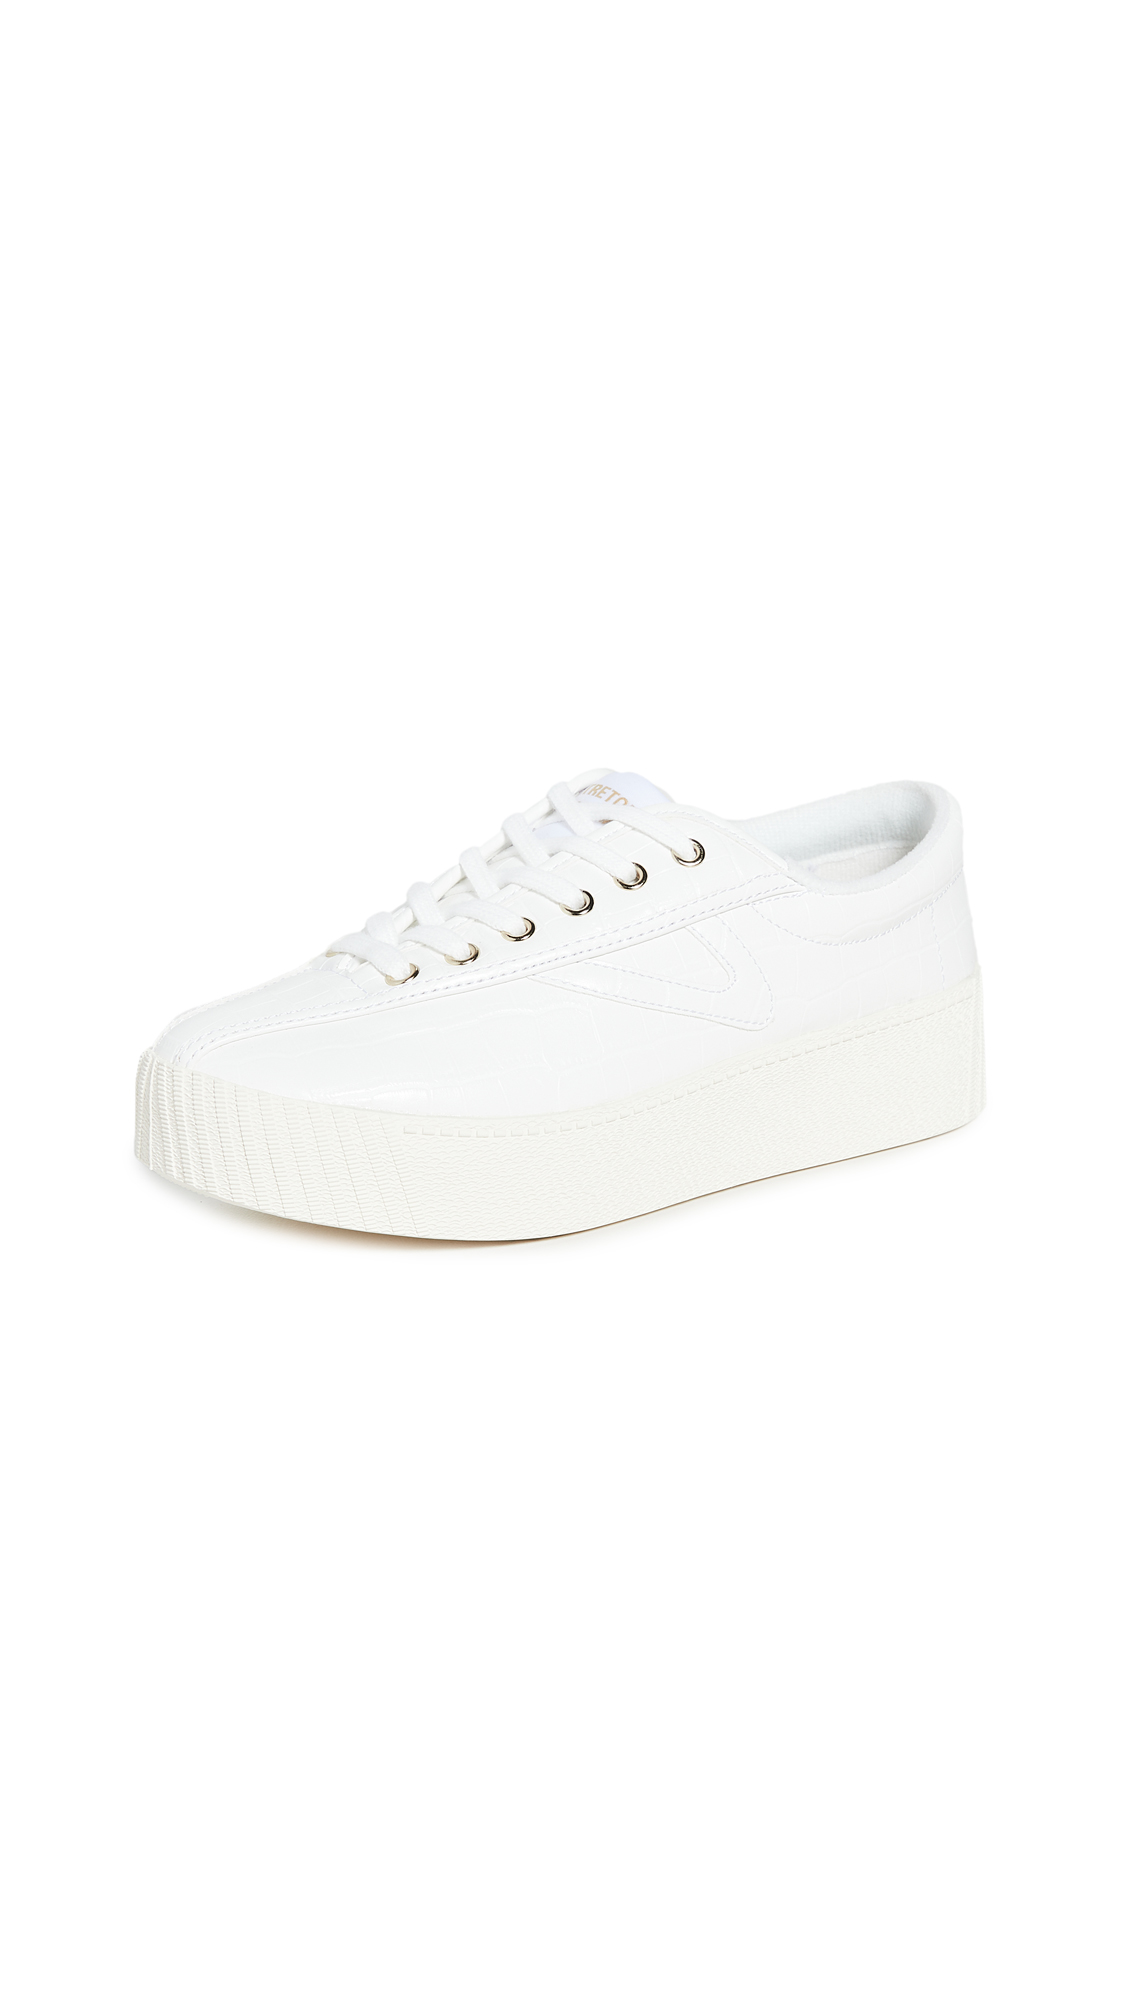 Tretorn Nylite 13 Bold Sneakers – 30% Off Sale